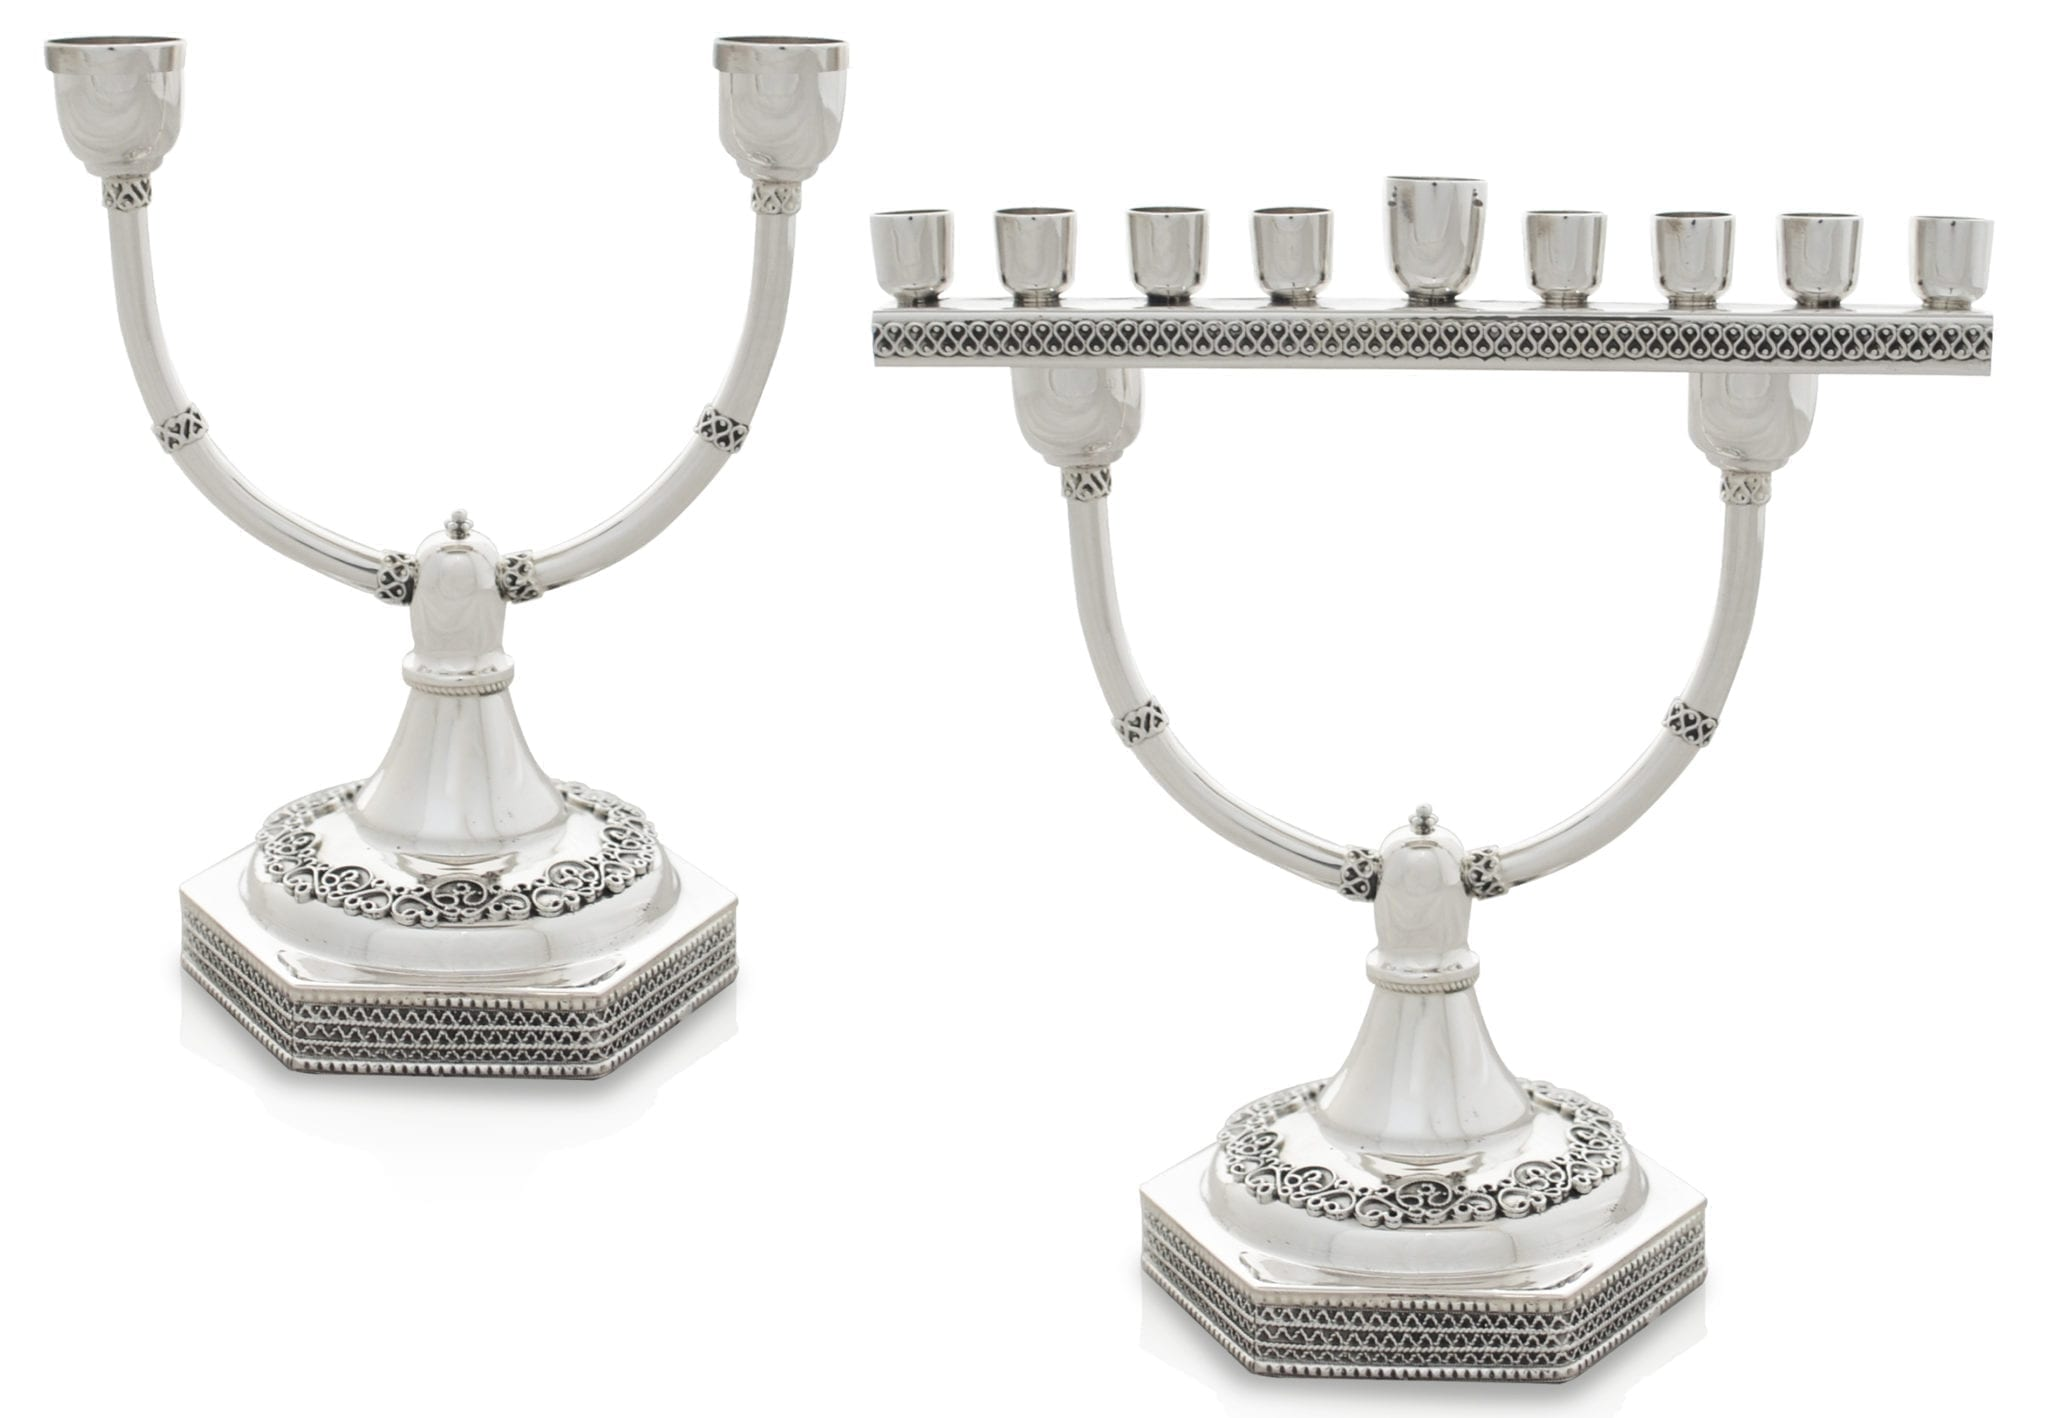 Menorah And Candesticks